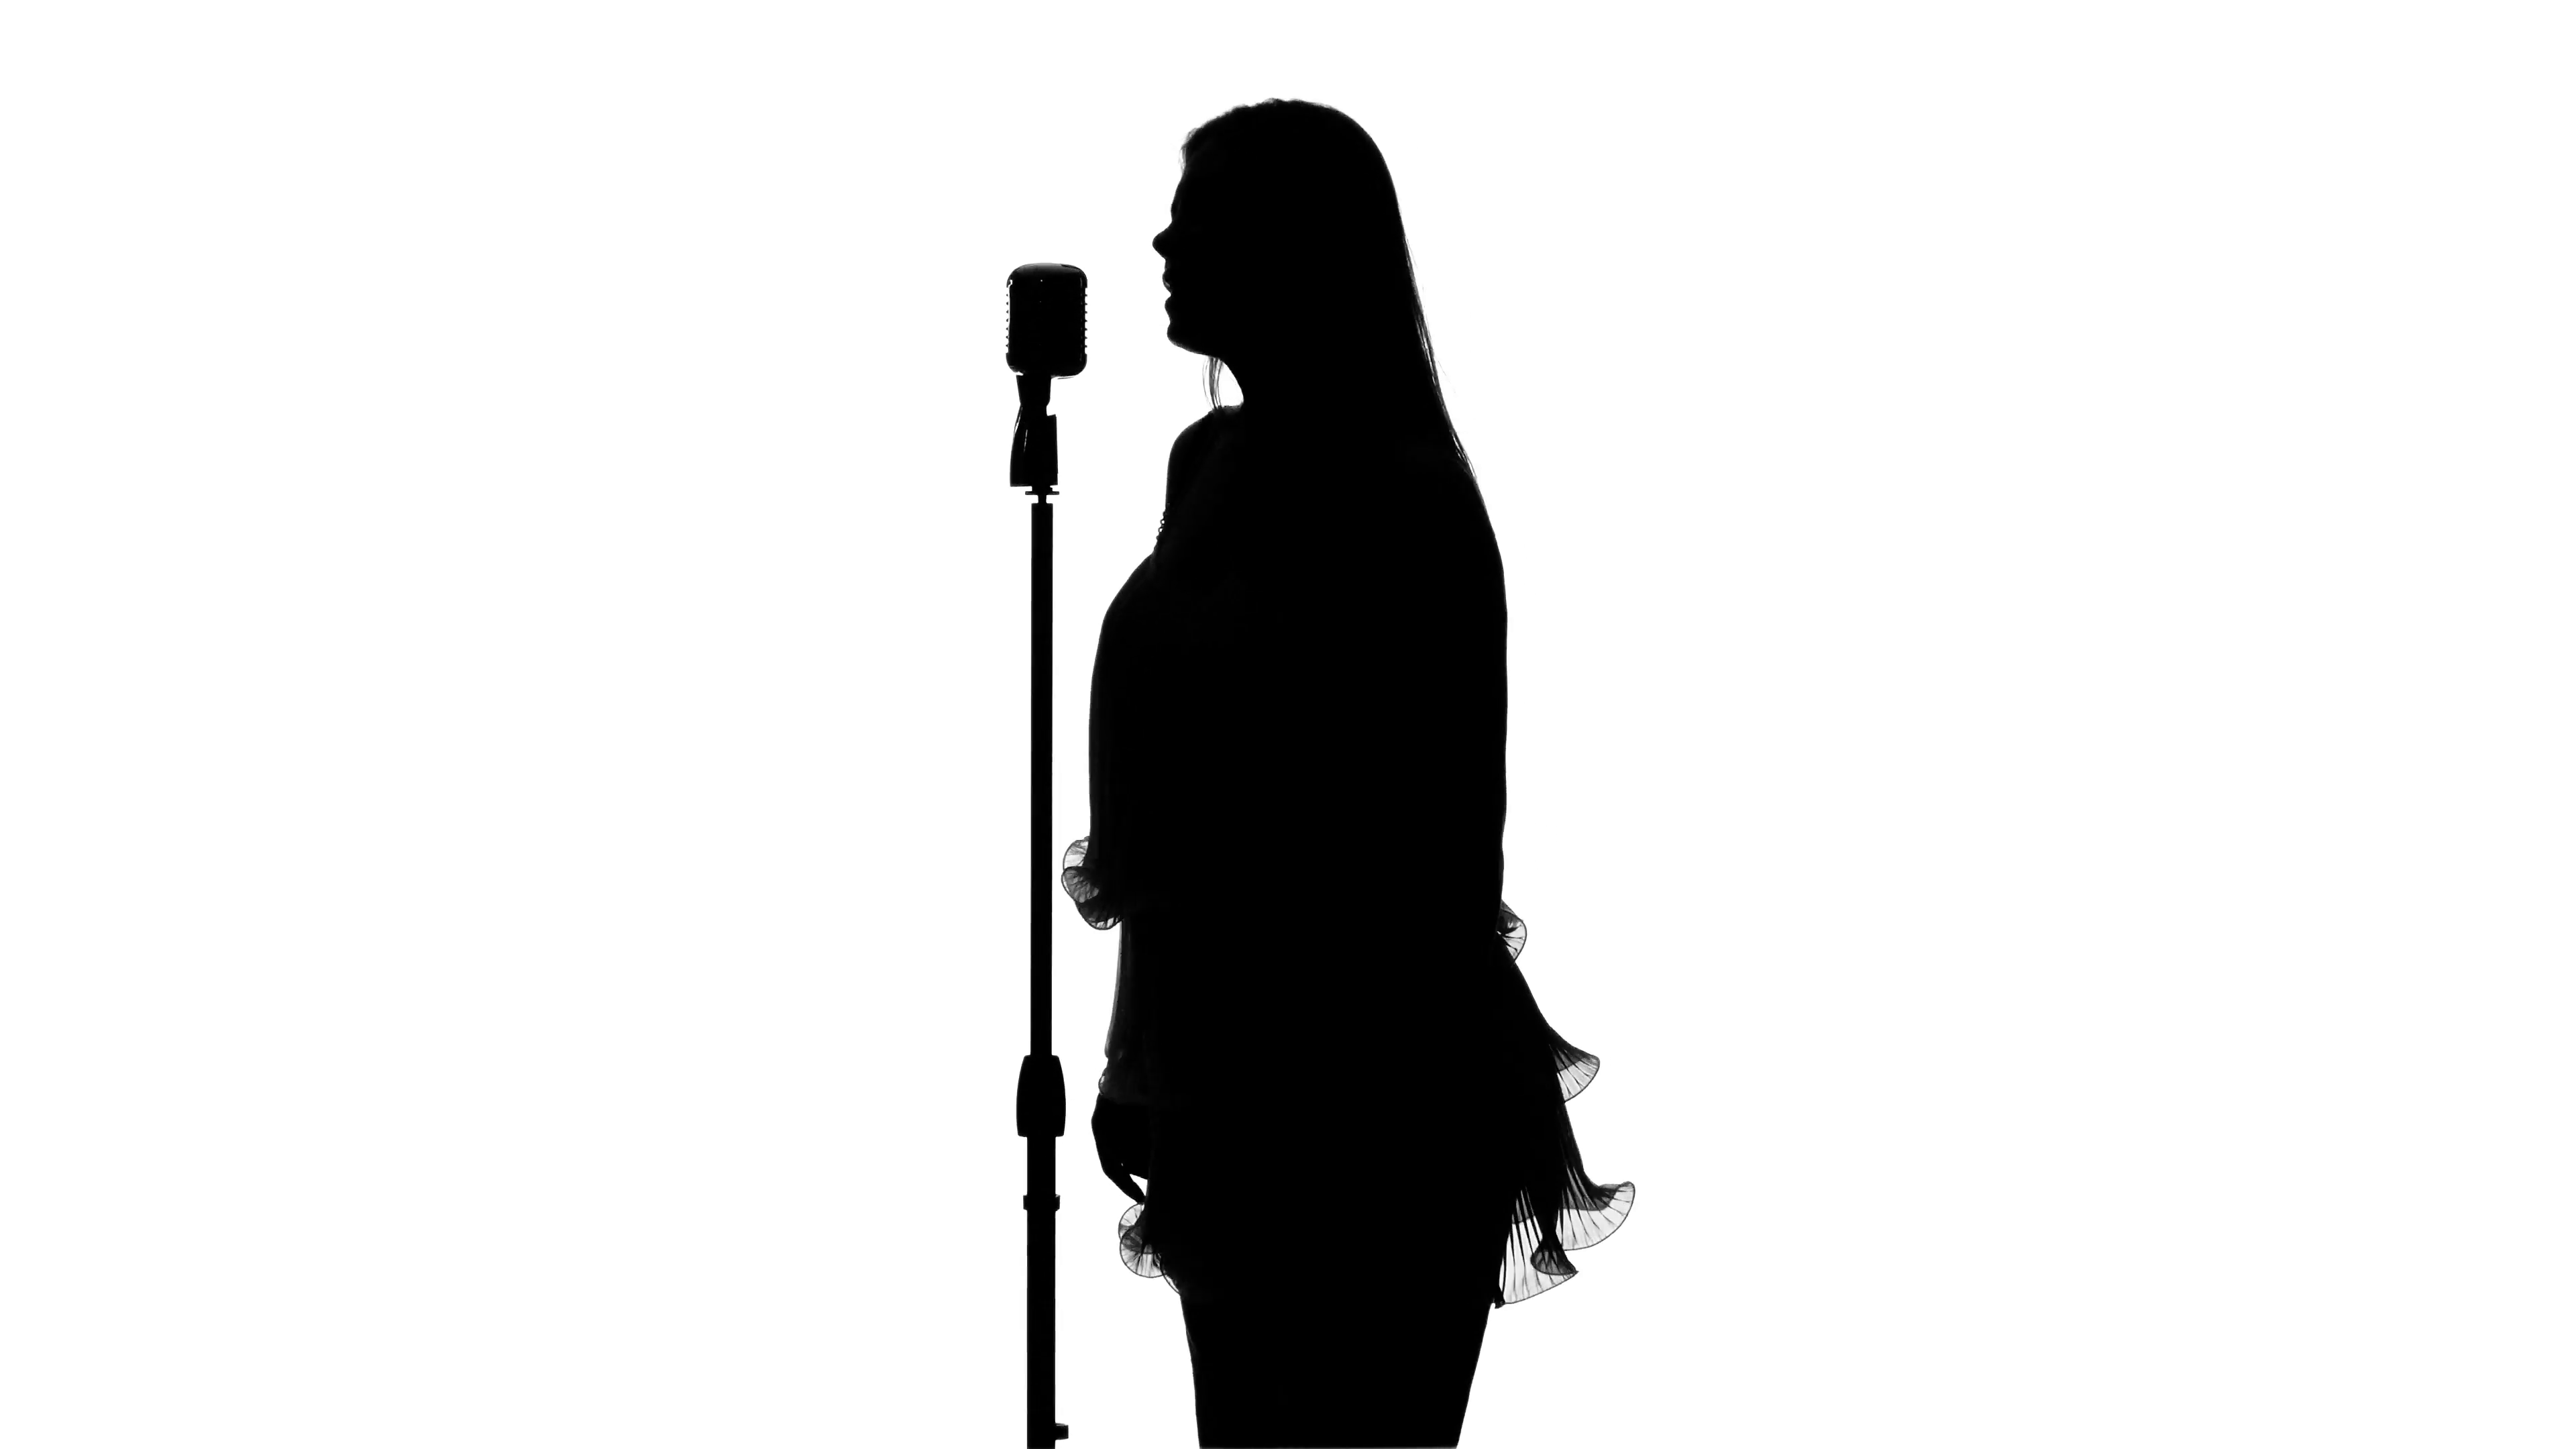 3840x2160 Singer Singing In Front Of A Retro Microphone. White. Silhouette